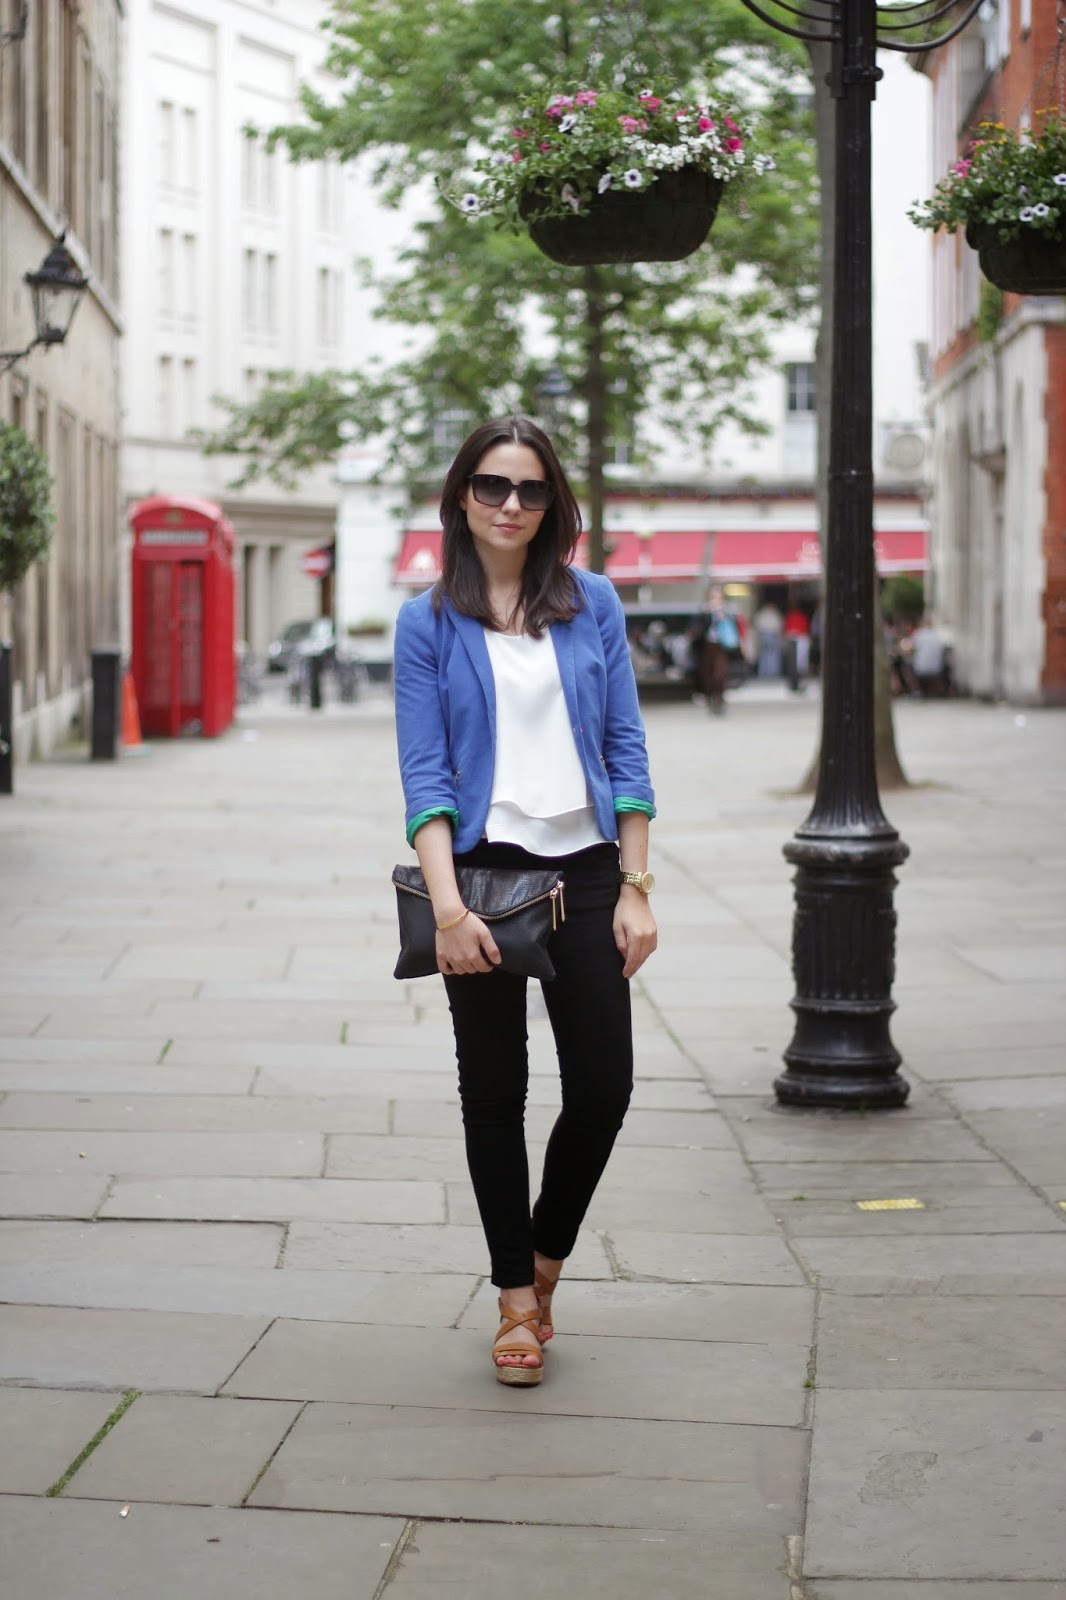 blue blazer, royal blue blazer, river island clutch, black clutch, zip clutch bag, tan wedge heel sandals, what defines us